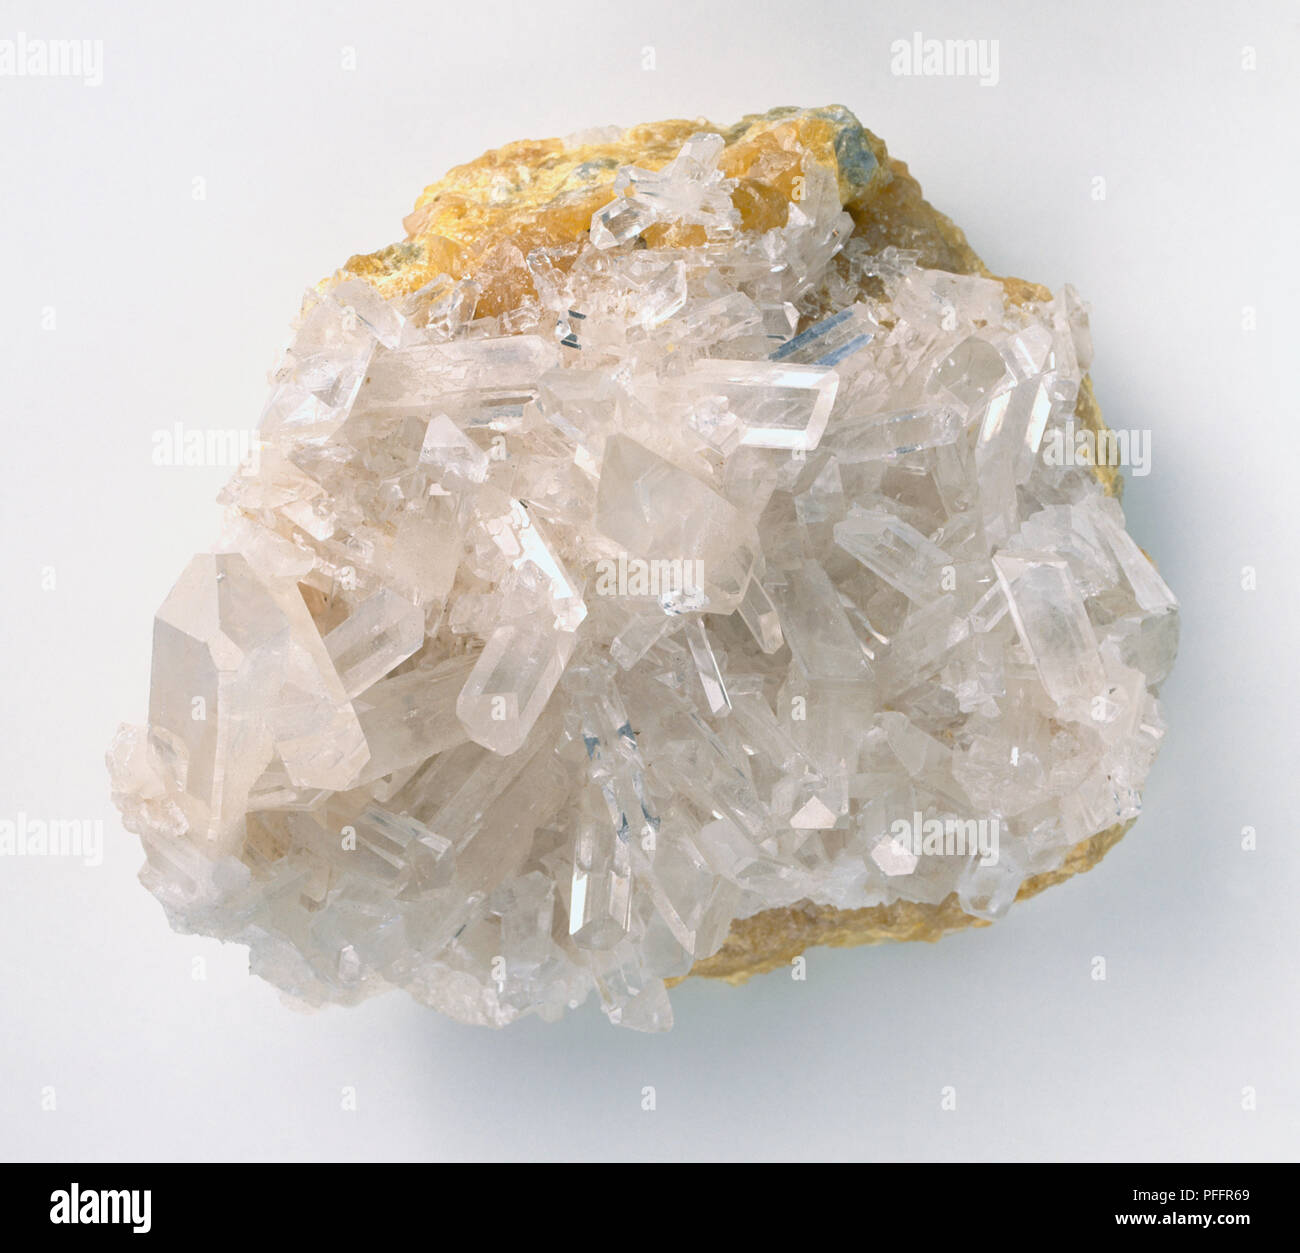 Celestine crystals in sulphur groundmass, close-up - Stock Image